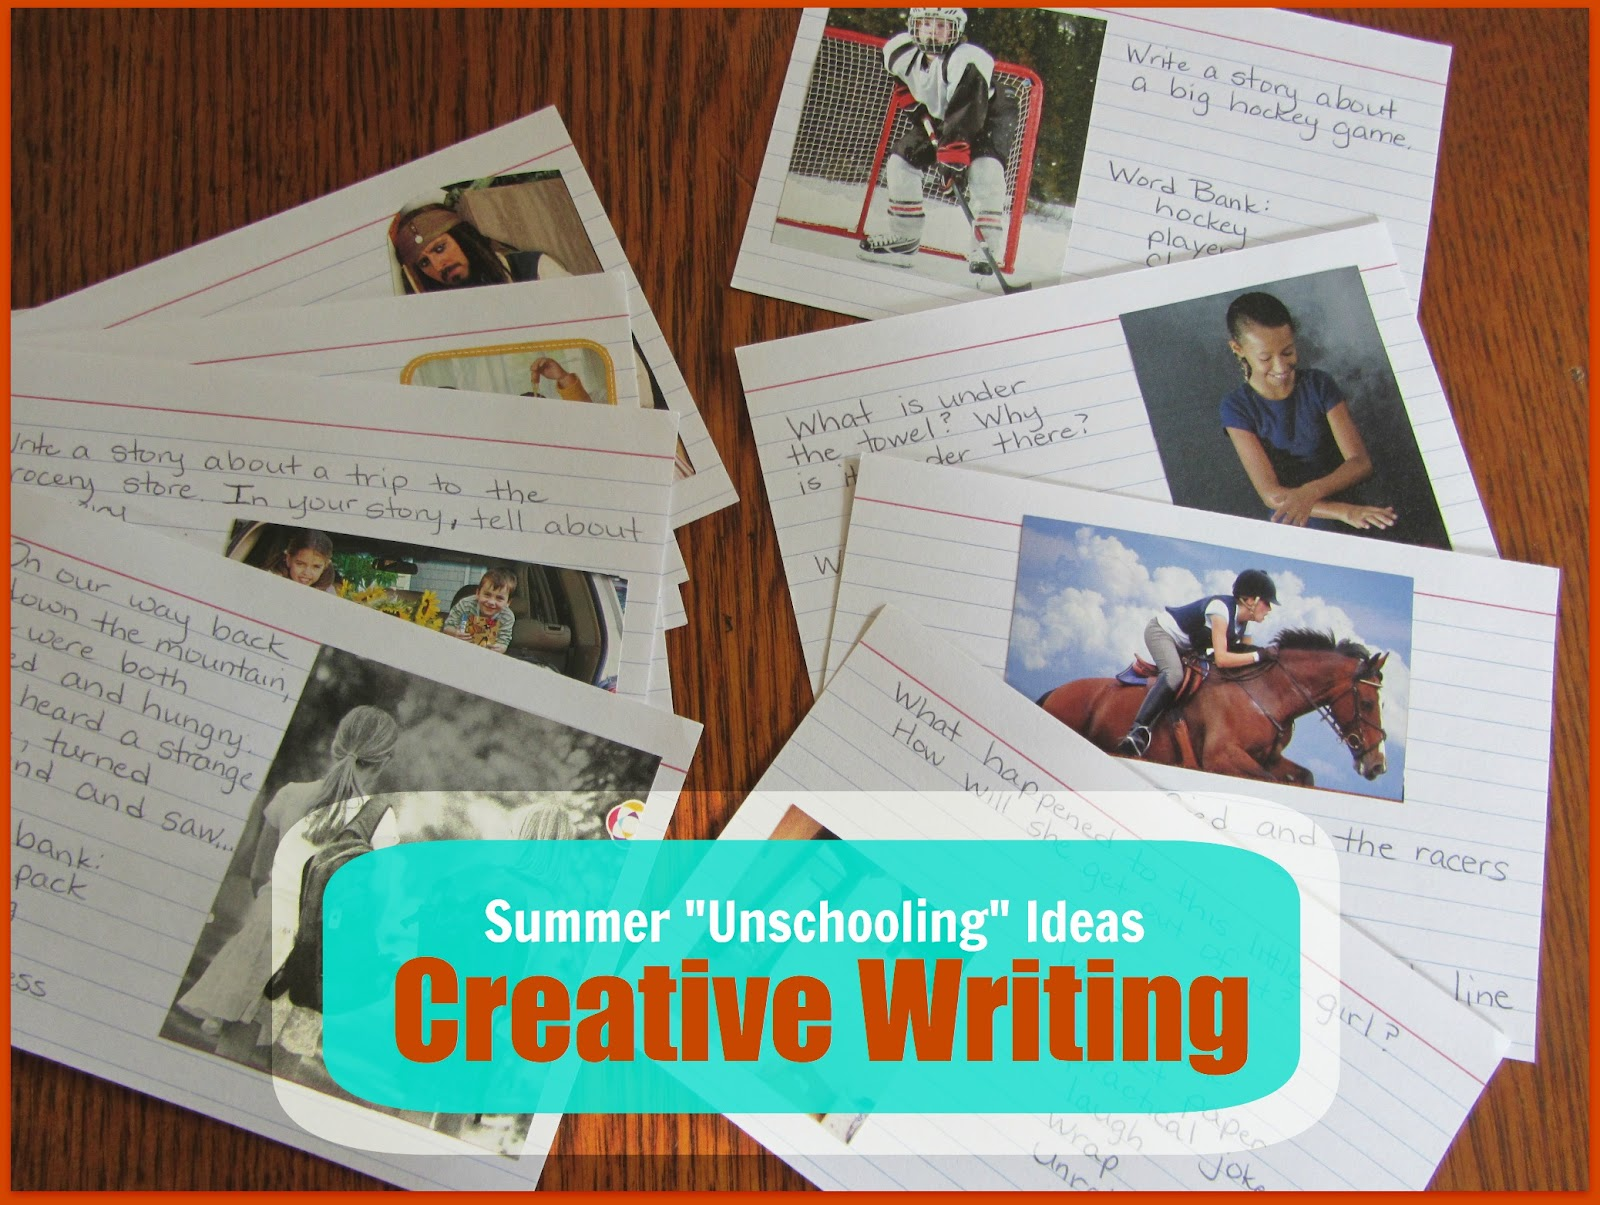 Creative writing service zealand university